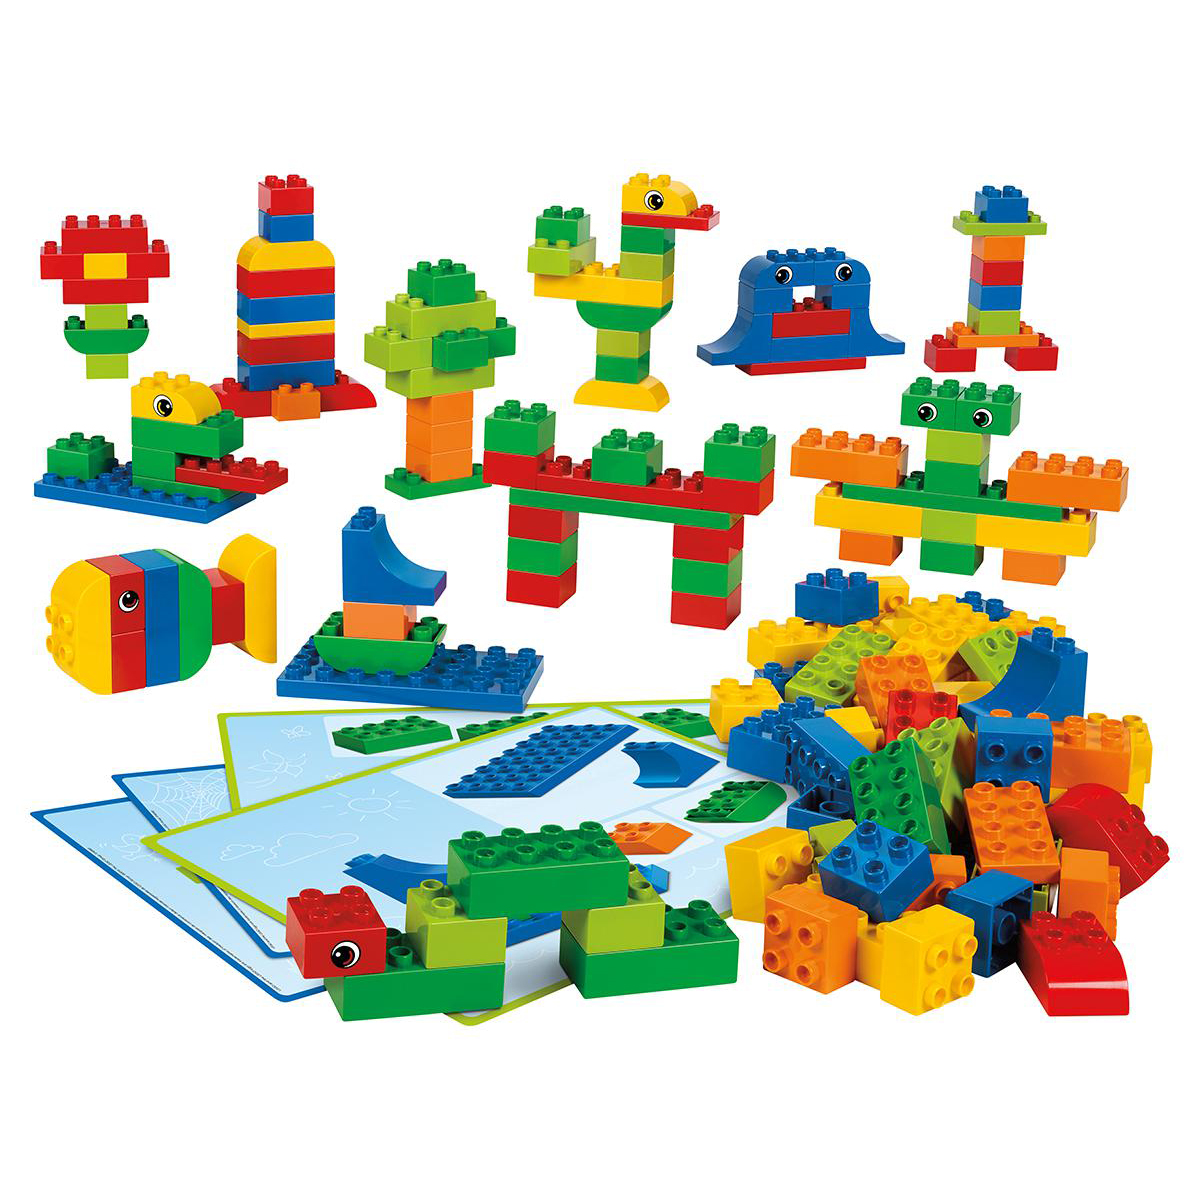 LEGO® Education Duplo Creative Brick Set